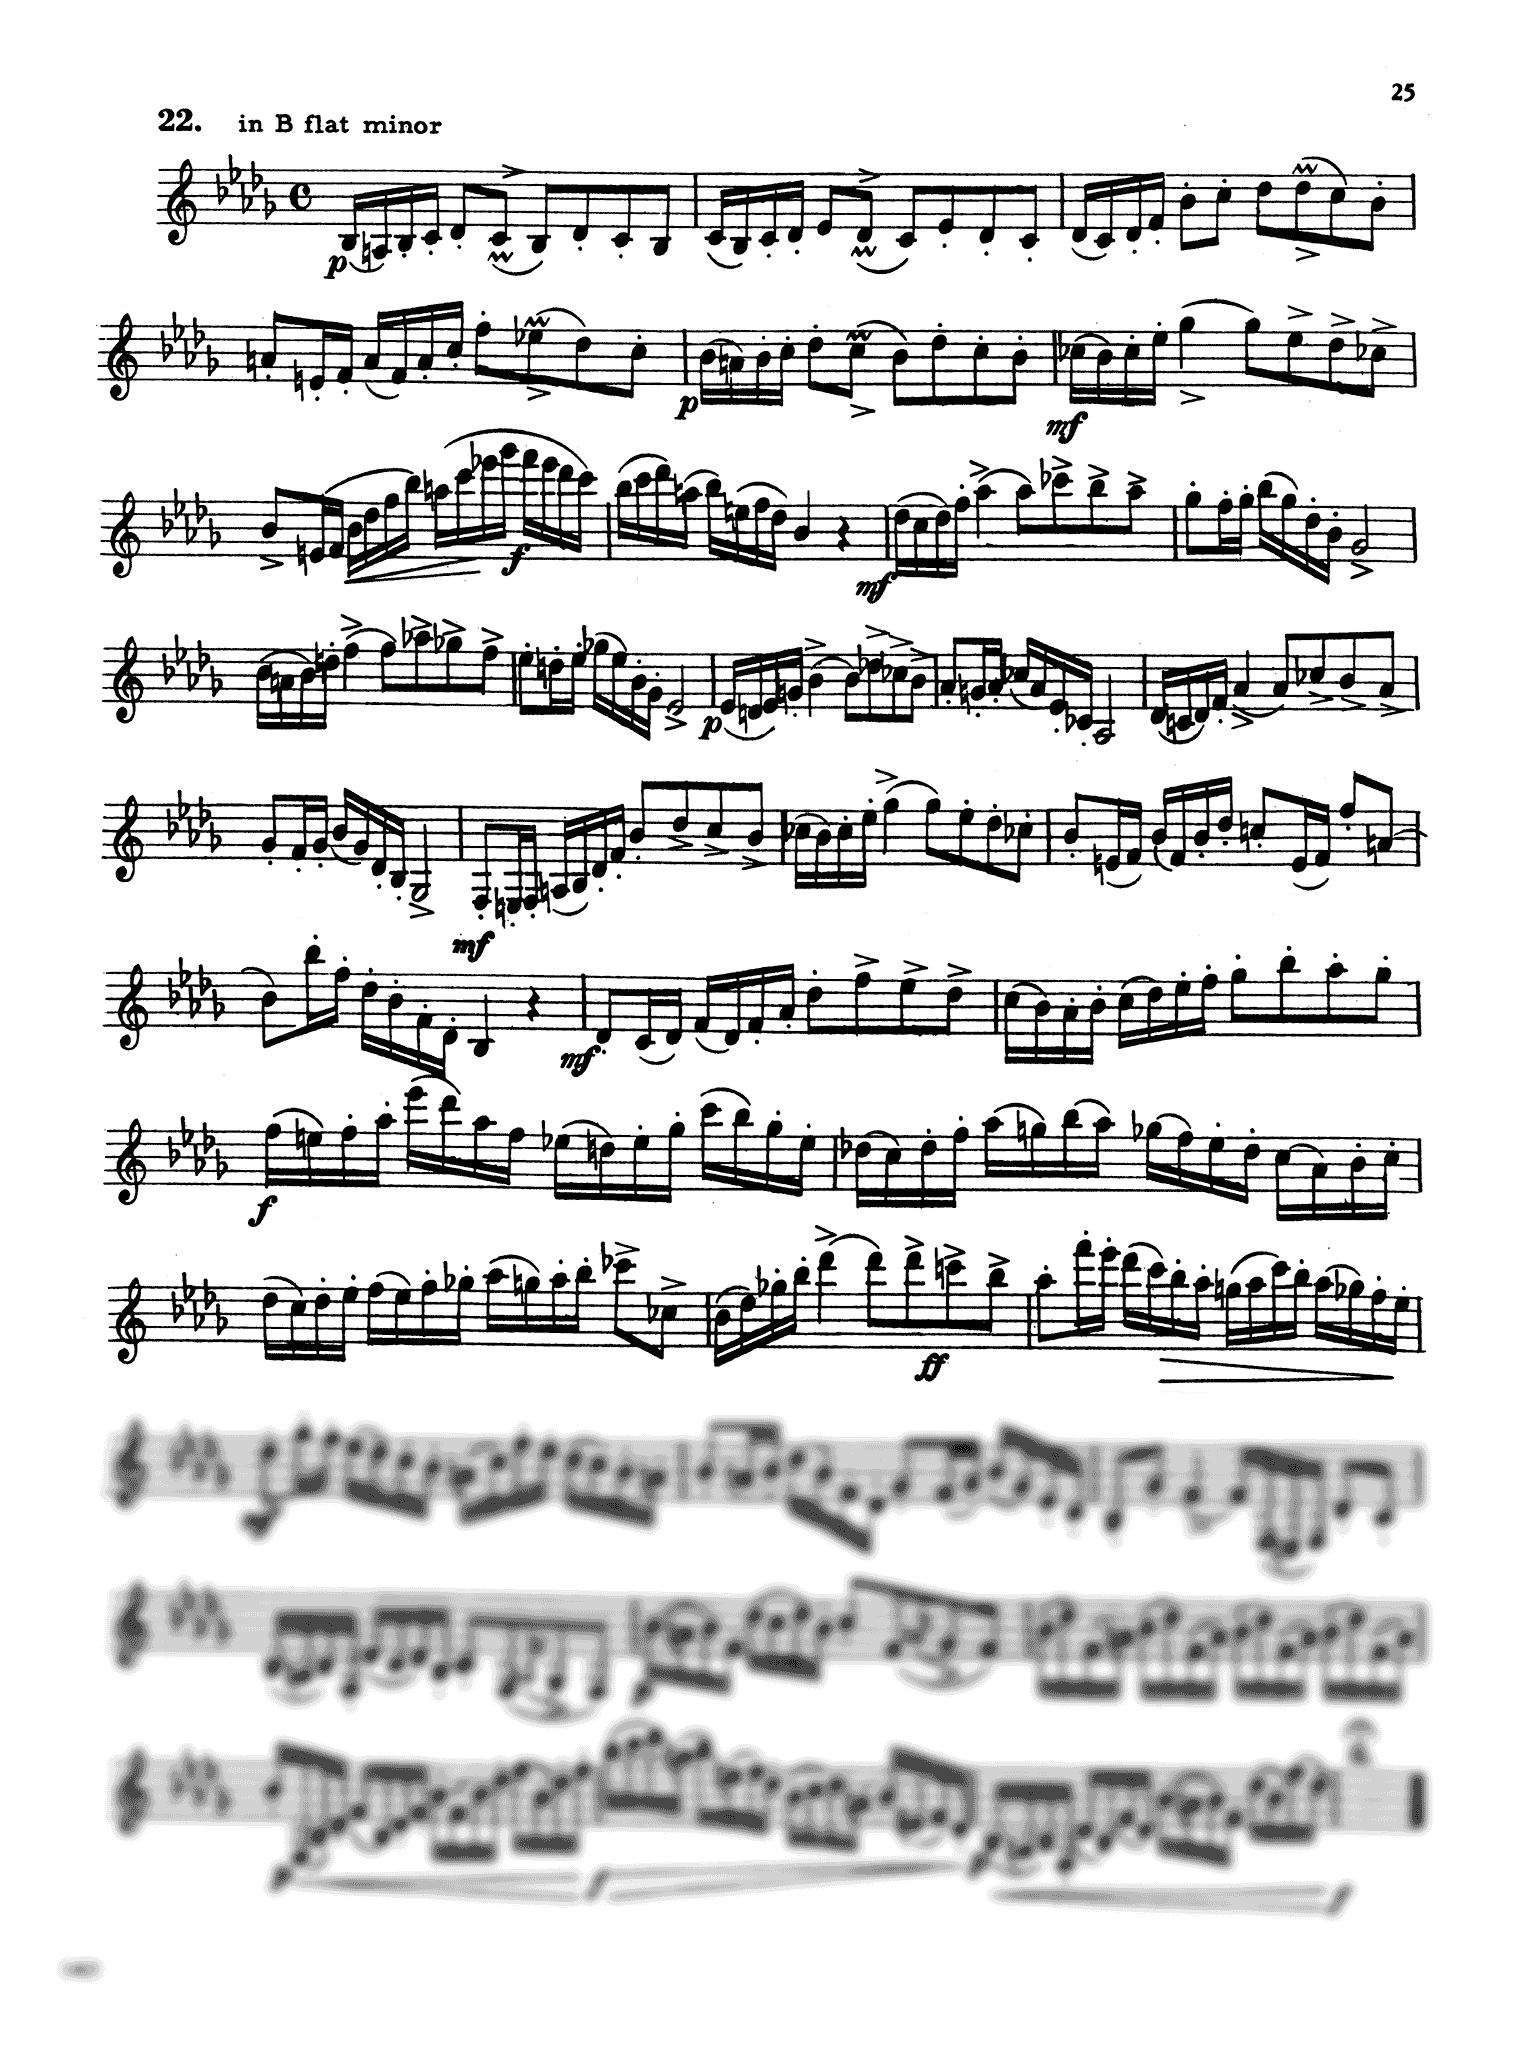 416 Progressive Studies for Clarinet, Book 4 Page 25